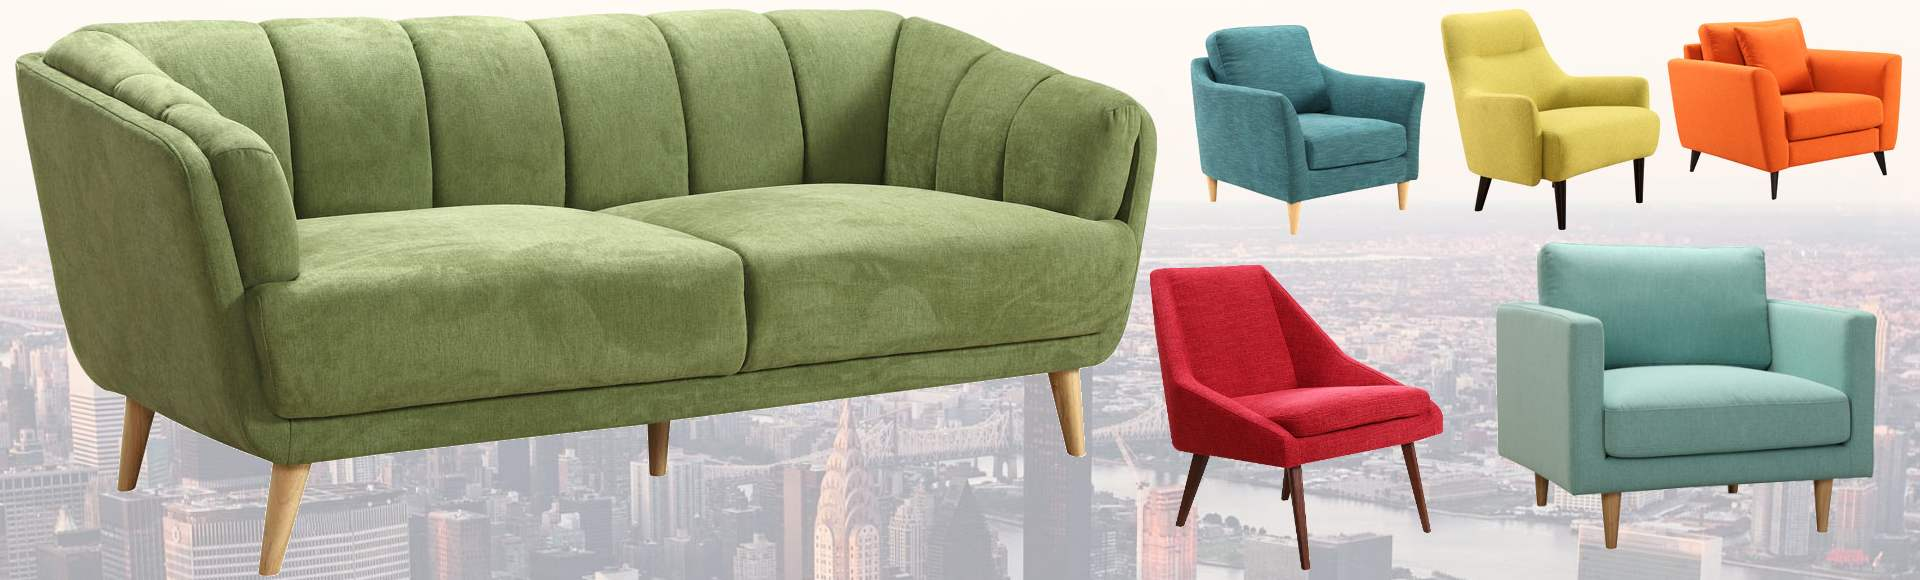 Urban Chic Upholstery Urban Chic Style Urban Chic Color ...